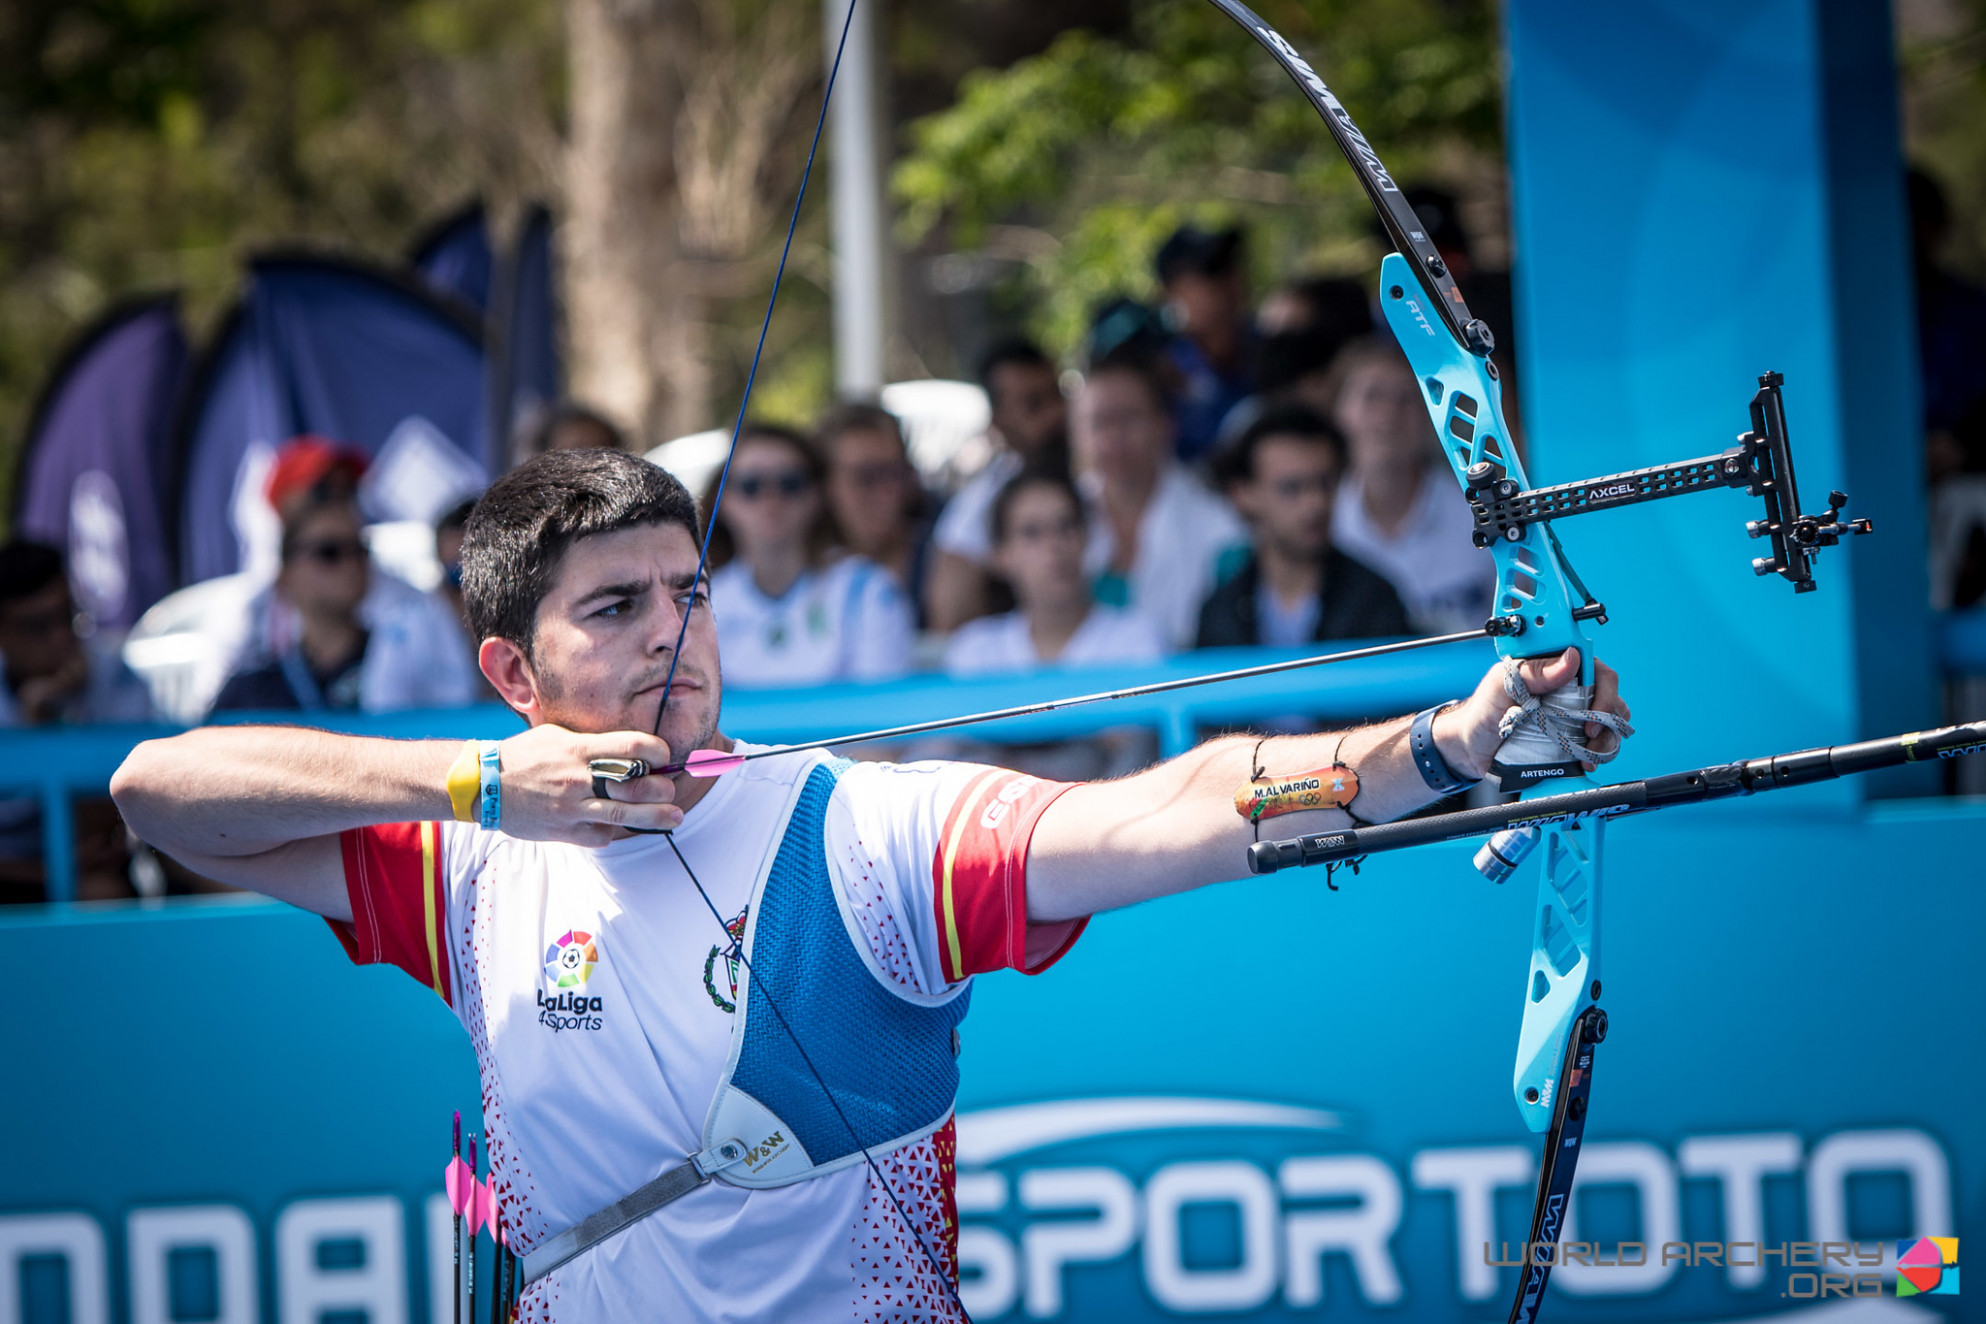 Miguel Alvarino Garcia named to Spanish Olympic team for Tokyo ...